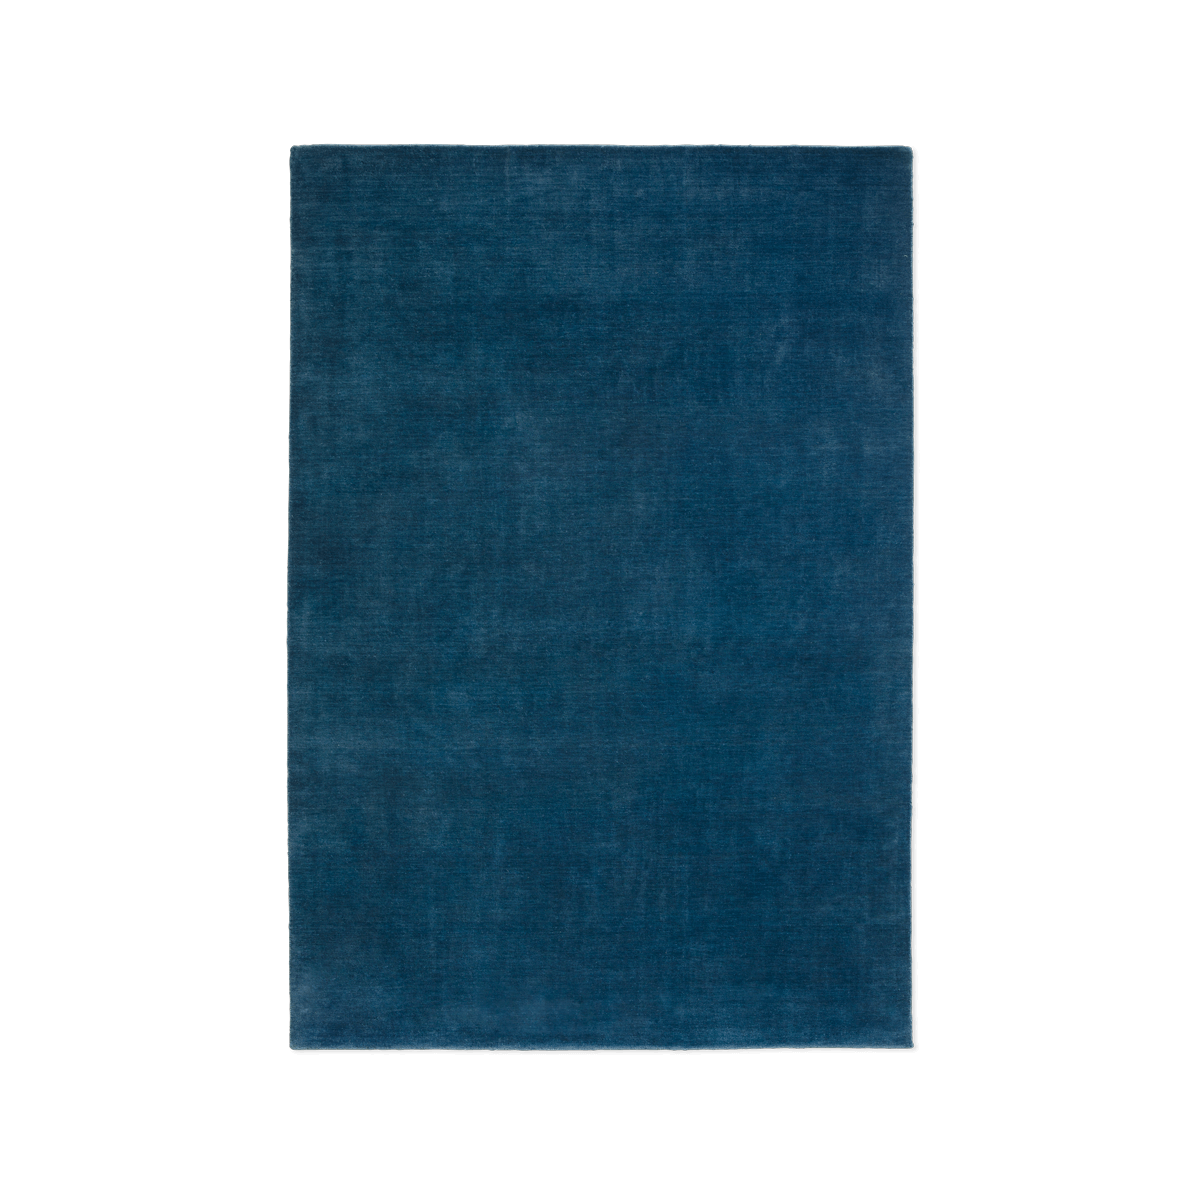 Product image of plush rug Grand in the color Deep Blue.